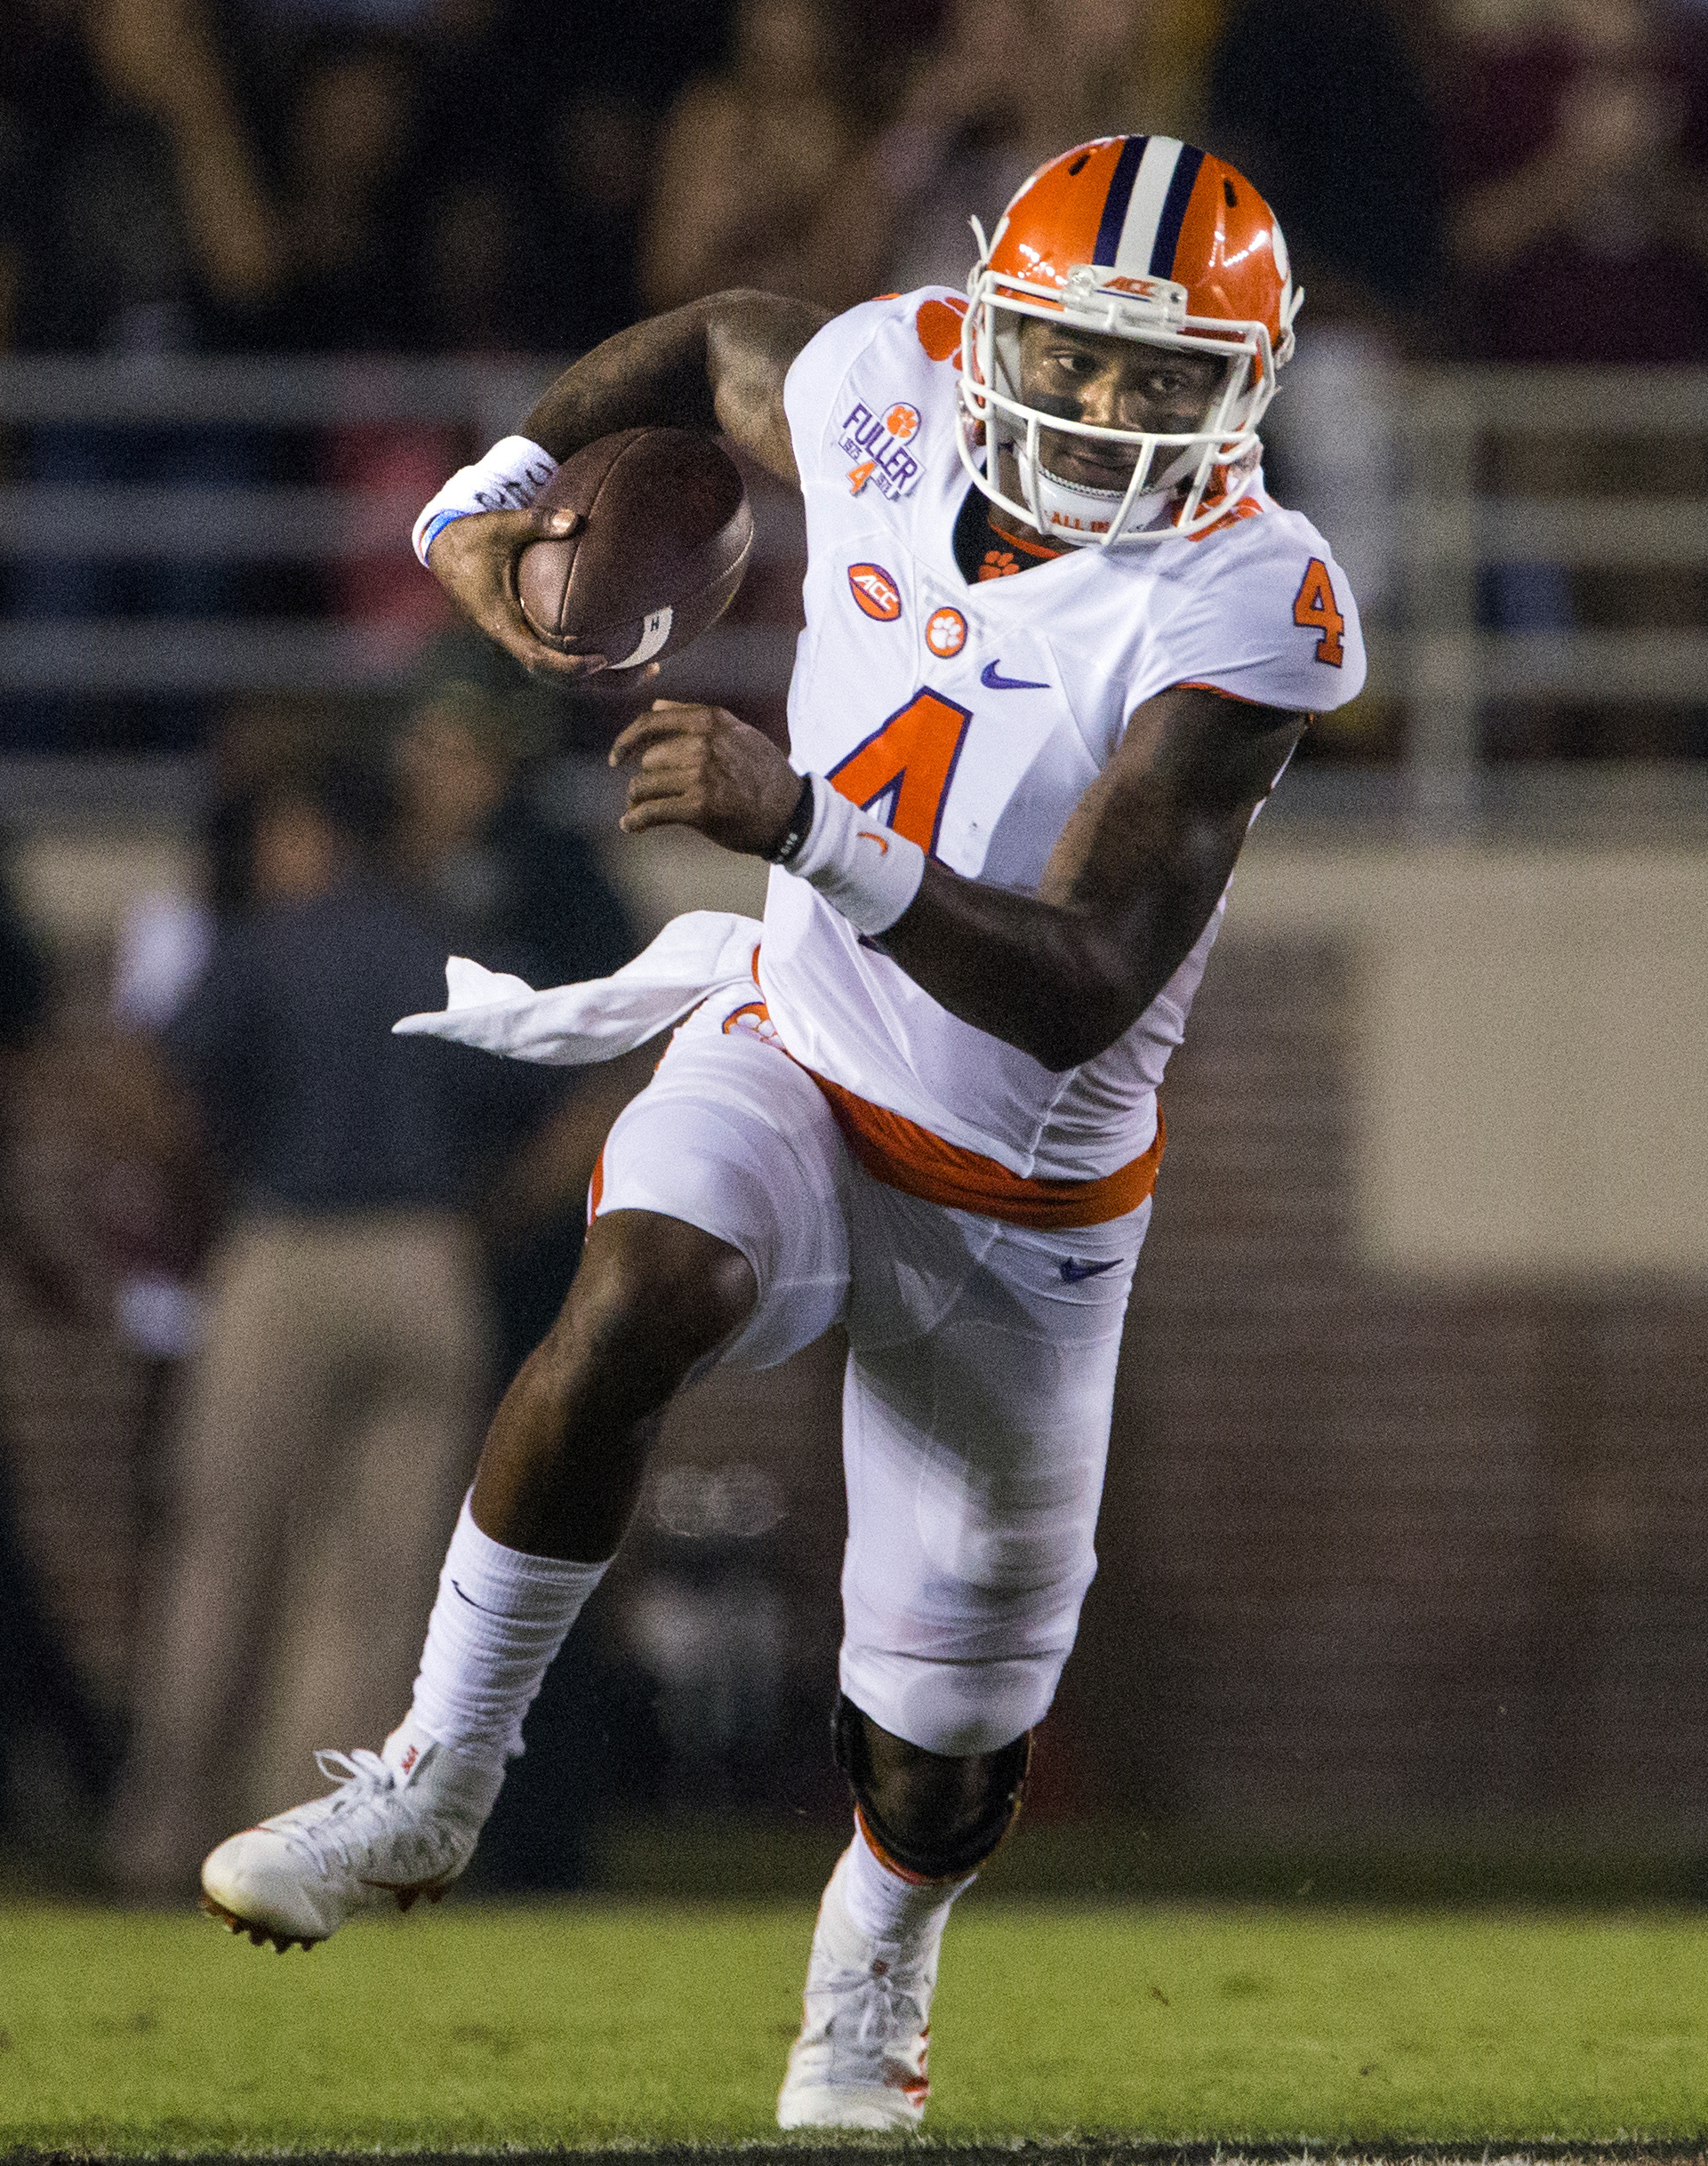 FILE - In this Saturday, Oct. 29, 2016, file photo, Clemson quarterback Deshaun Watson runs during the first half of the team's NCAA college football game against Florida State in Tallahassee, Fla. Watson threw for 378 yards, two touchdowns and two interc